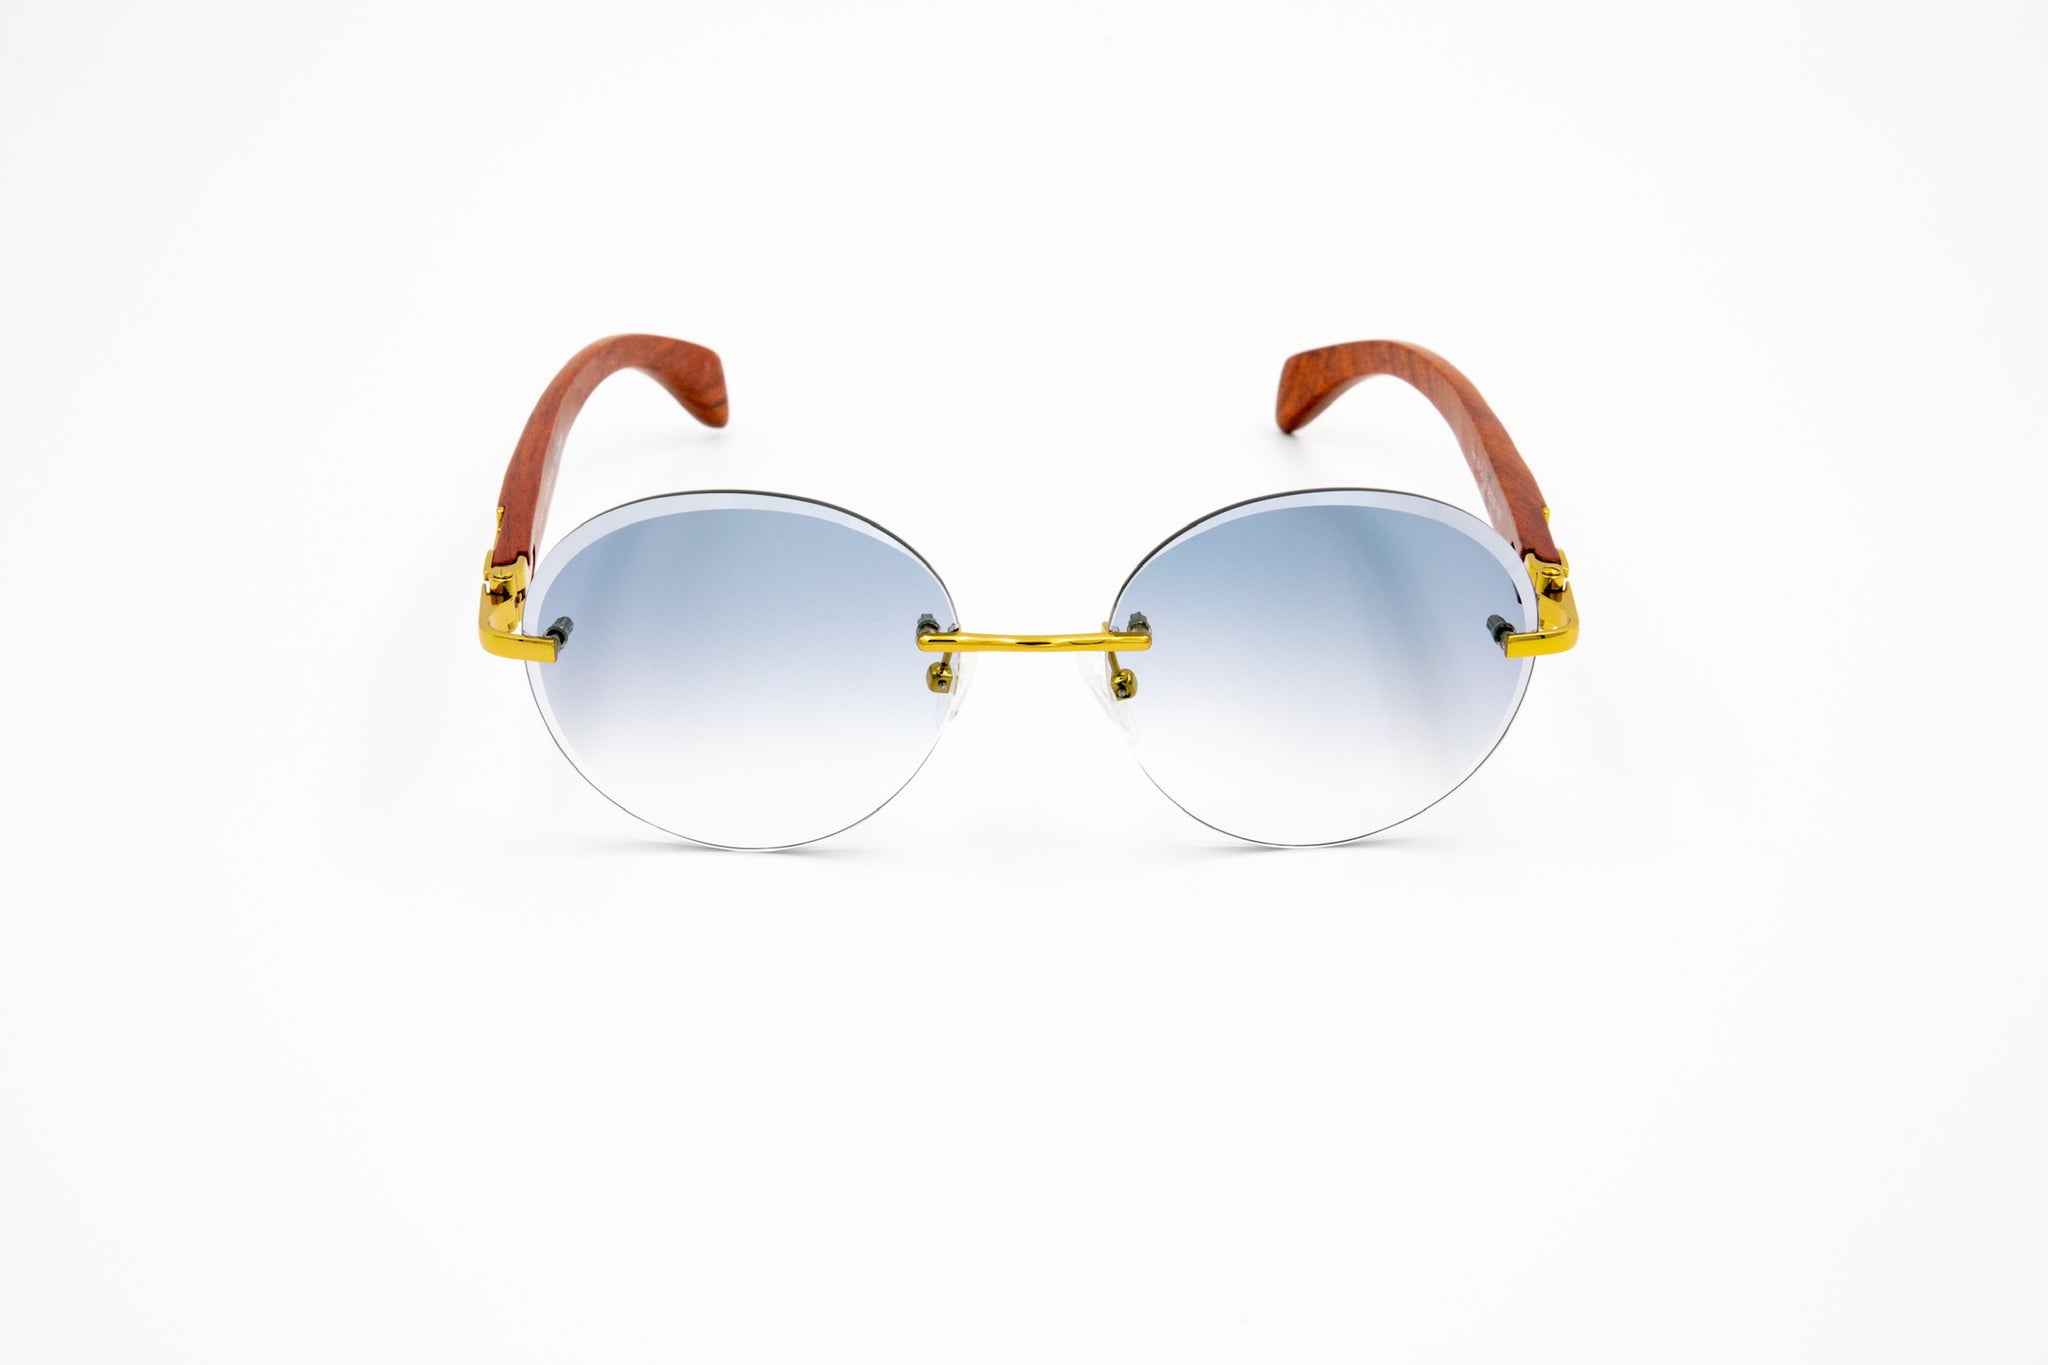 Vintage Wood Collection Rimless Gold and Wood Drill Mount Sunglasses, Round Gradient Grey Anti Reflective Bevel Lenses